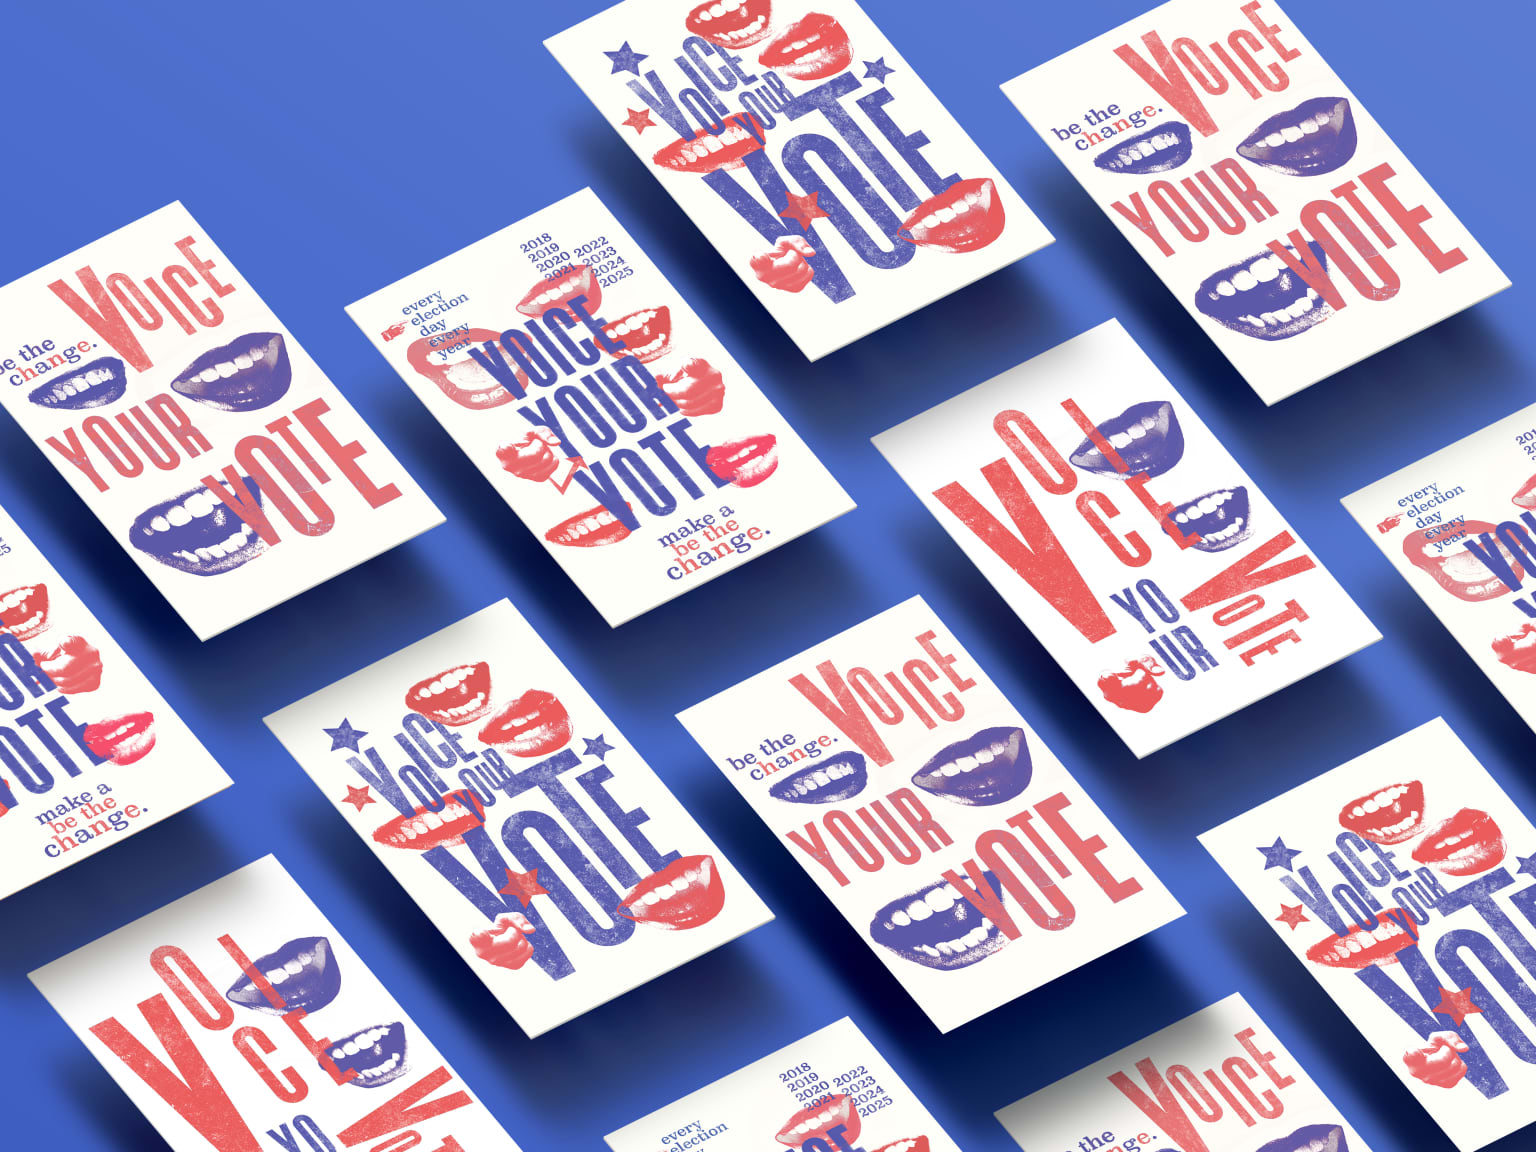 Voice Your Vote - Poster Series